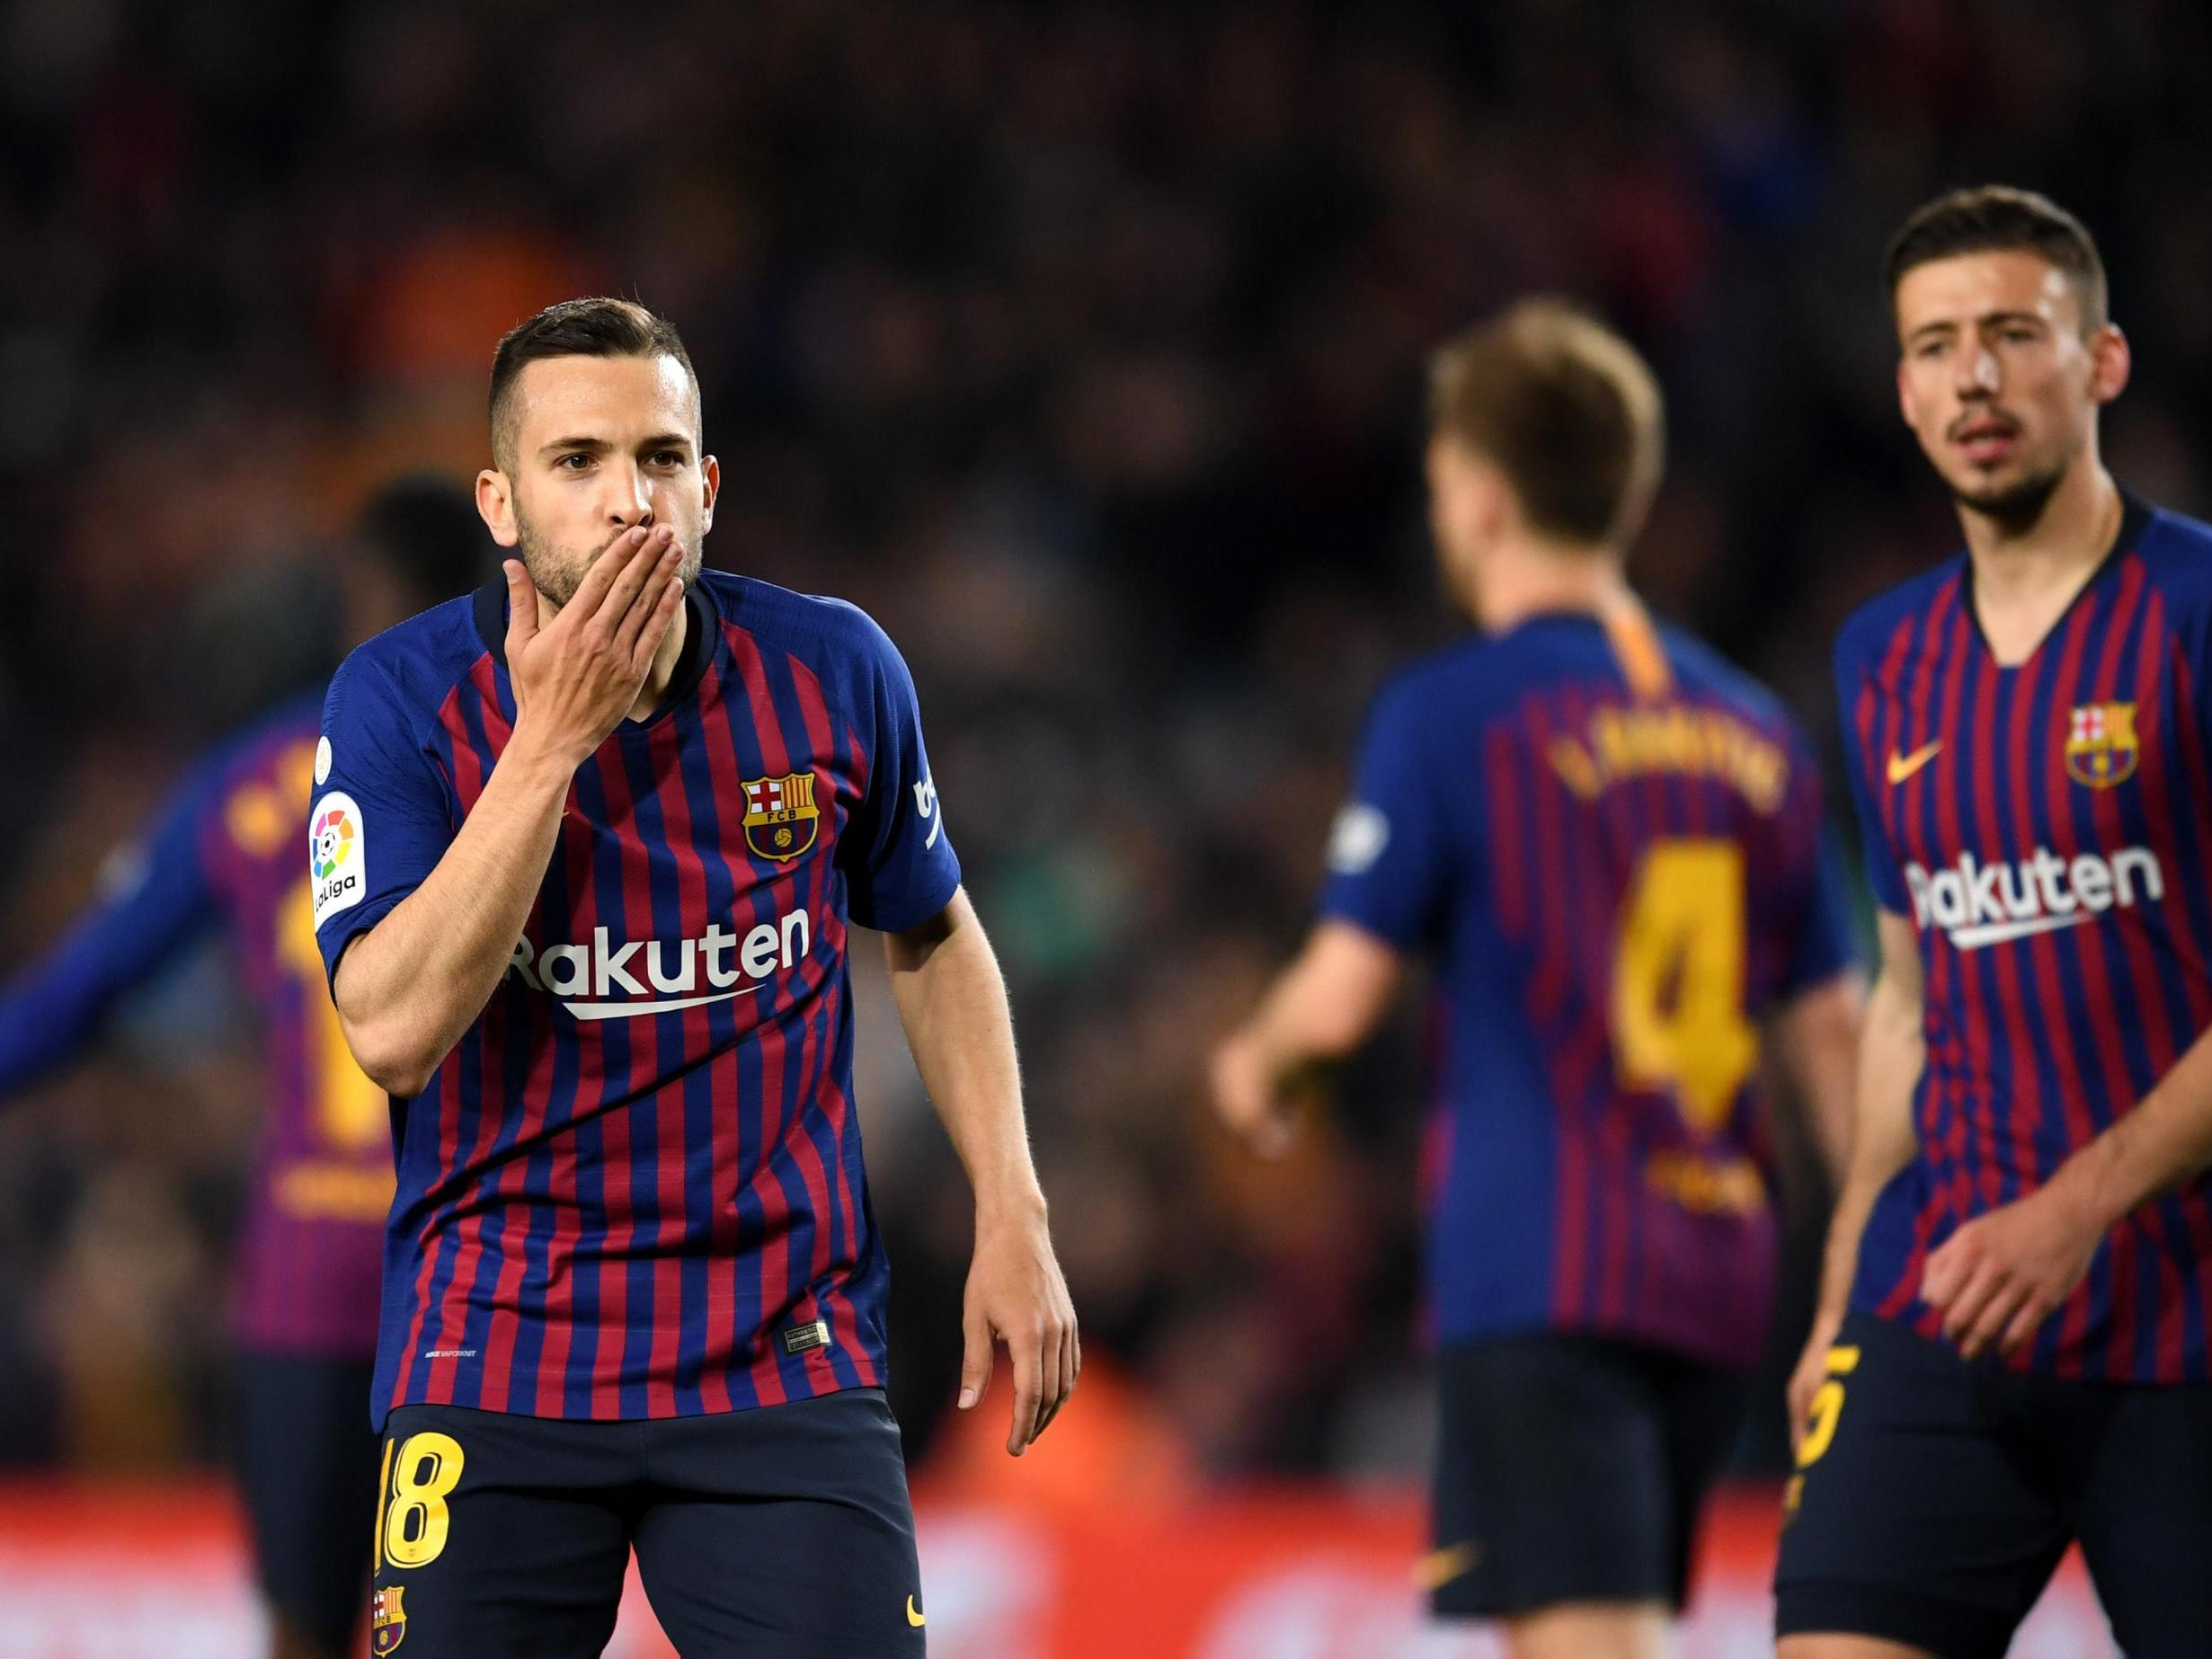 Barcelona two wins from La Liga title after victory over Real Sociedad